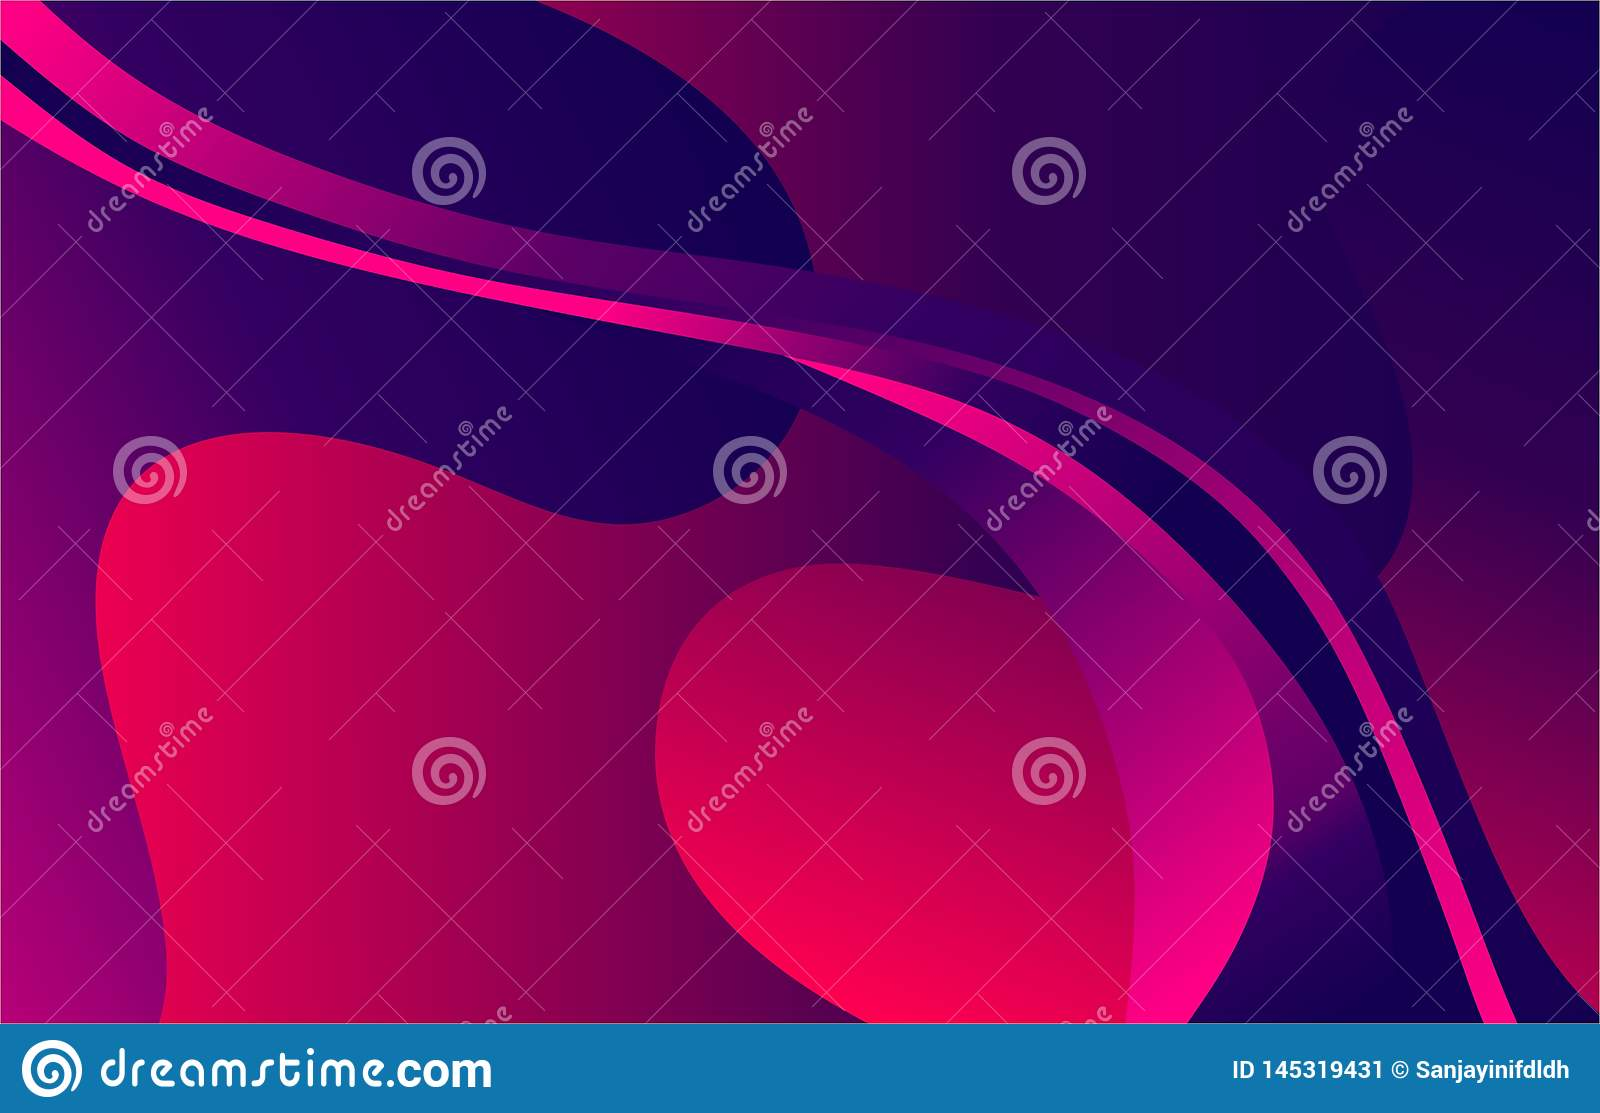 Vector Abstract Pink and Blue color wave Background,wallpaper